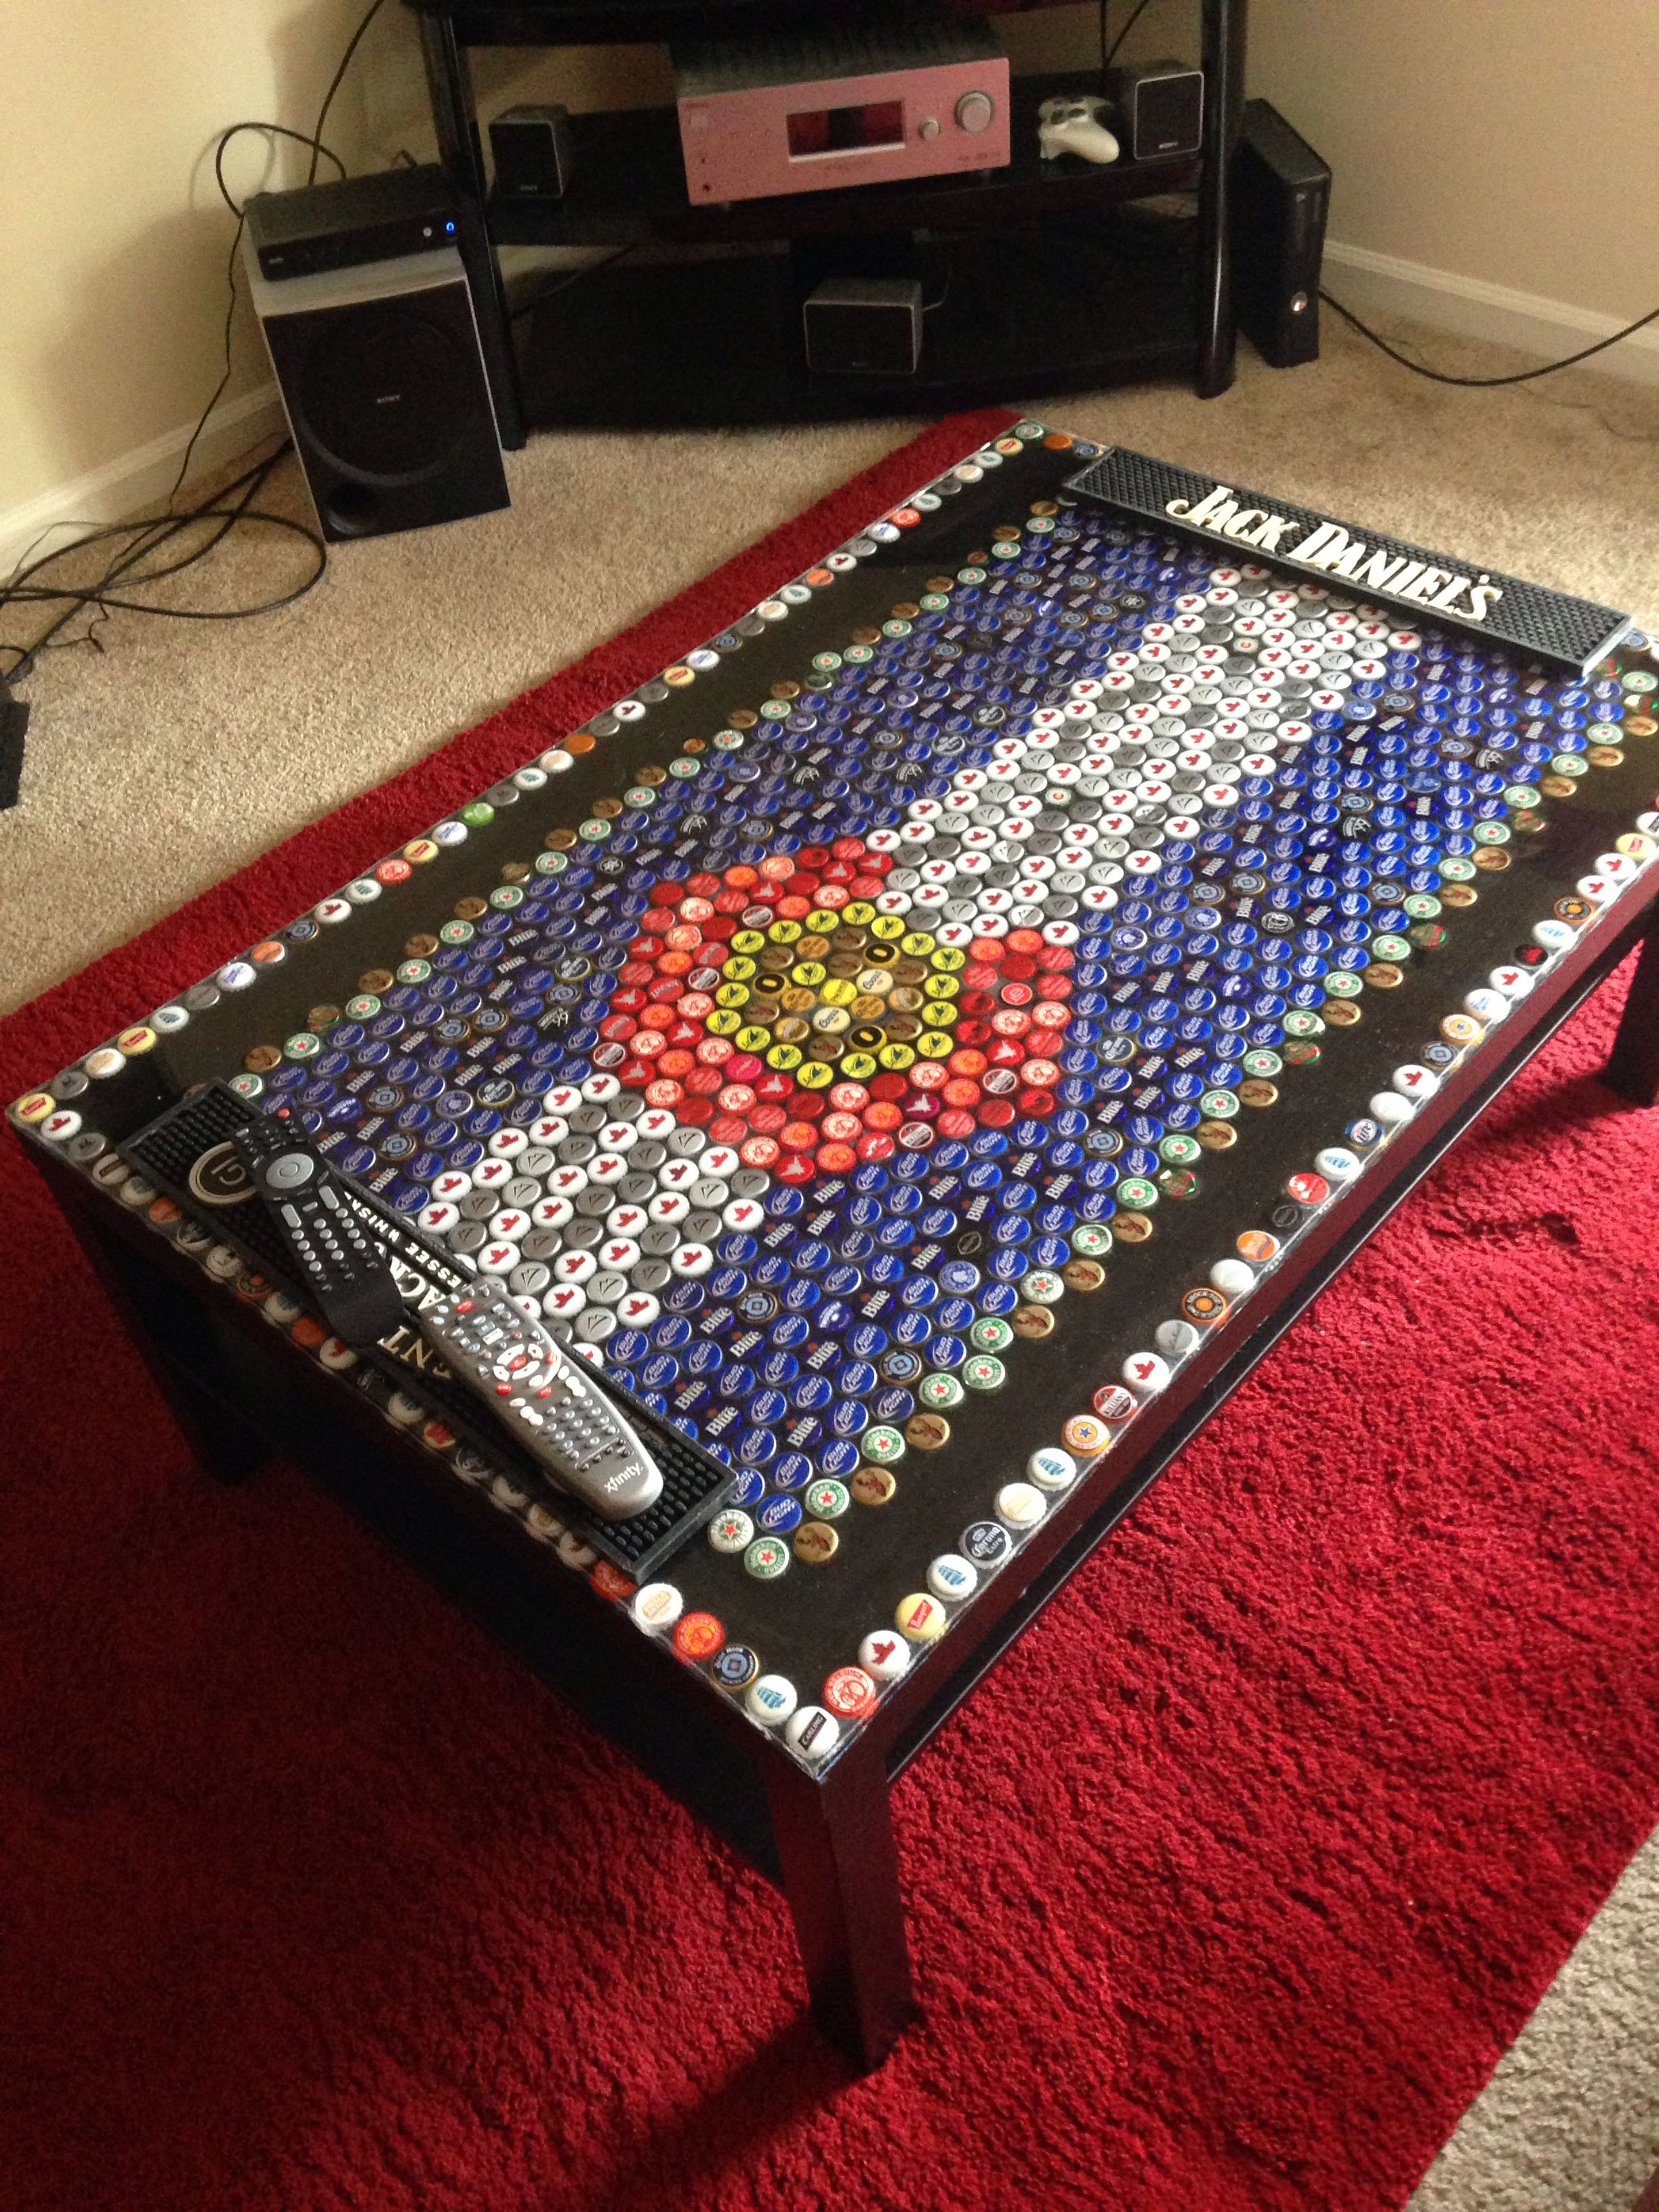 Hockey beer pong table - Homemade Colorado Flag Coffee Table Made Out Of Beer Bottle Caps